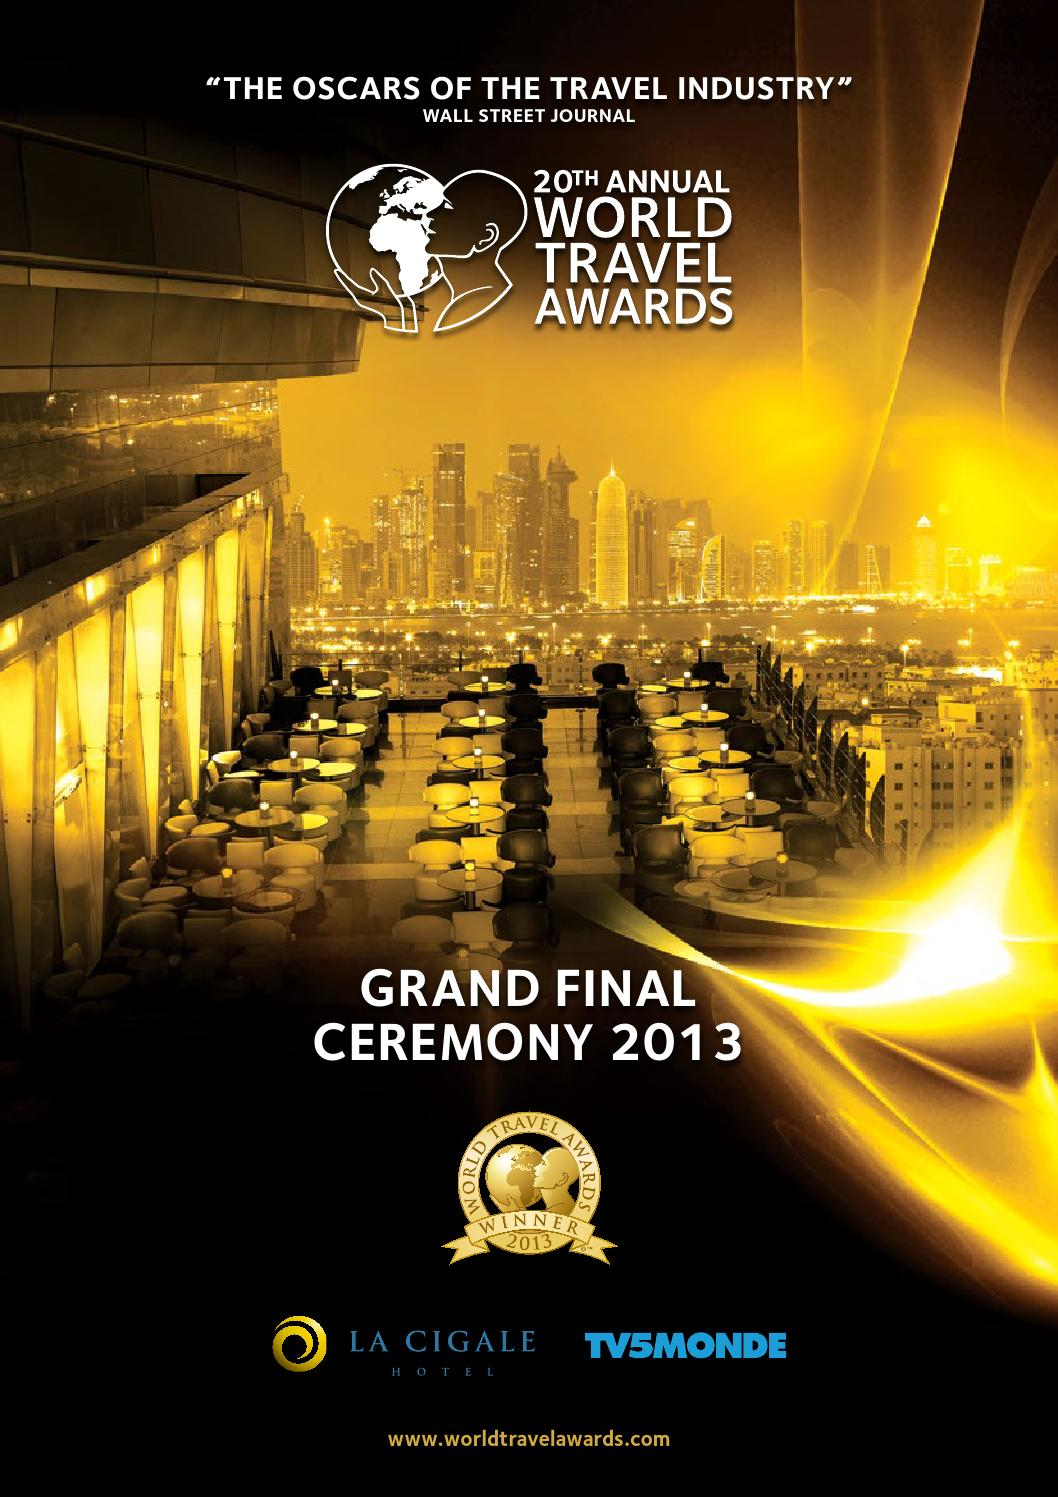 Personalised service at the villa club of kempinski hotel haitang bay - World Travel Awards Grand Final Gala Ceremony 2013 By World Travel Awards Issuu